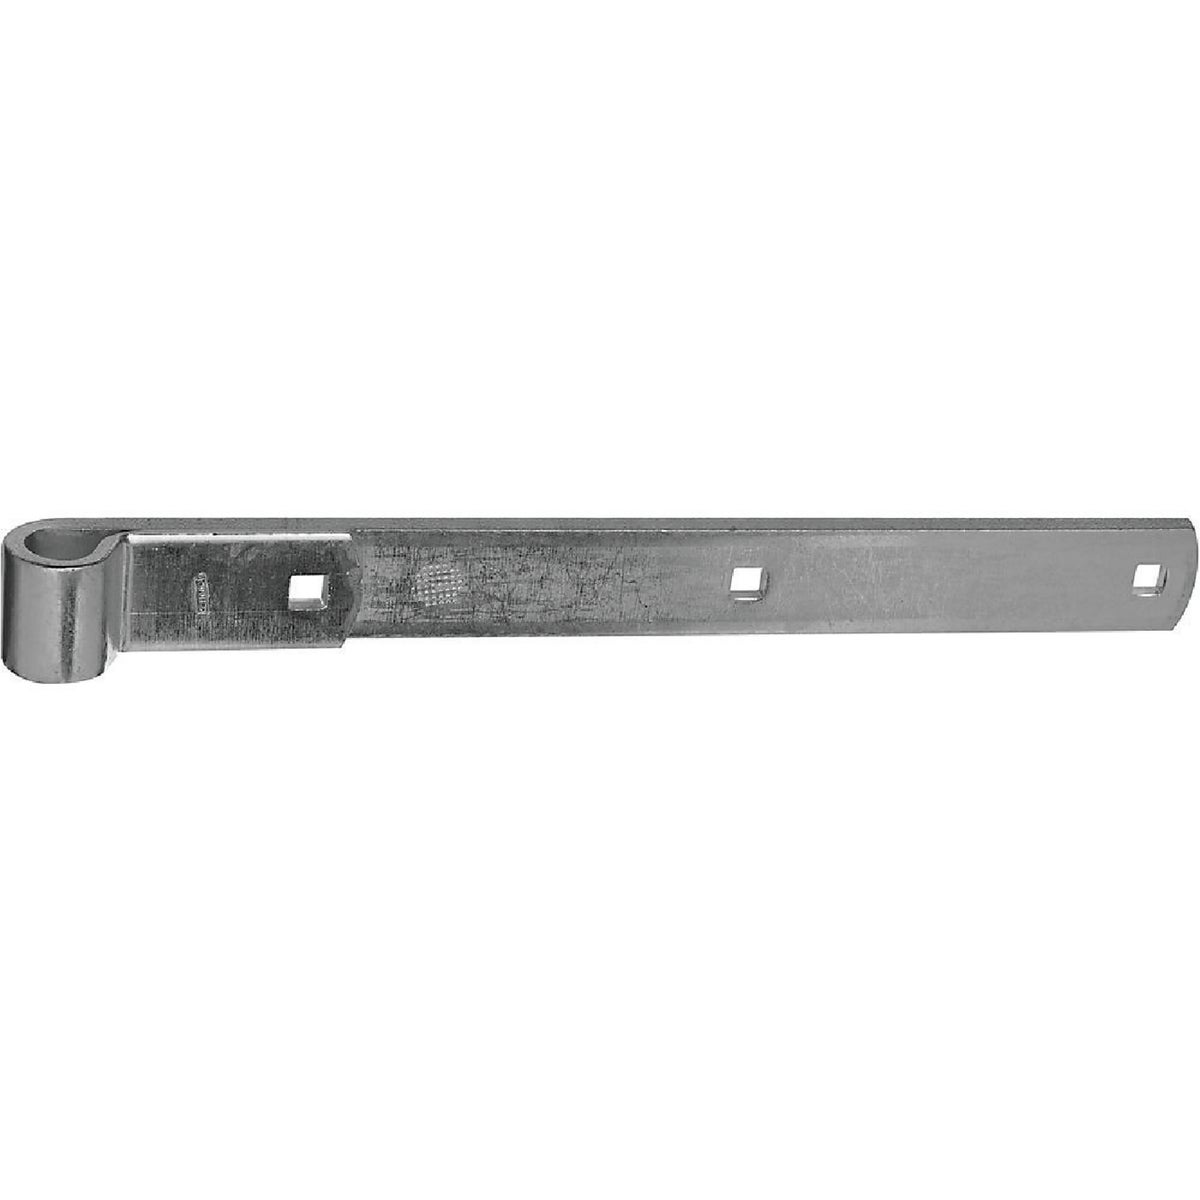 "14"" ZN HINGE STRAP - N130799 by National Mfg Co"